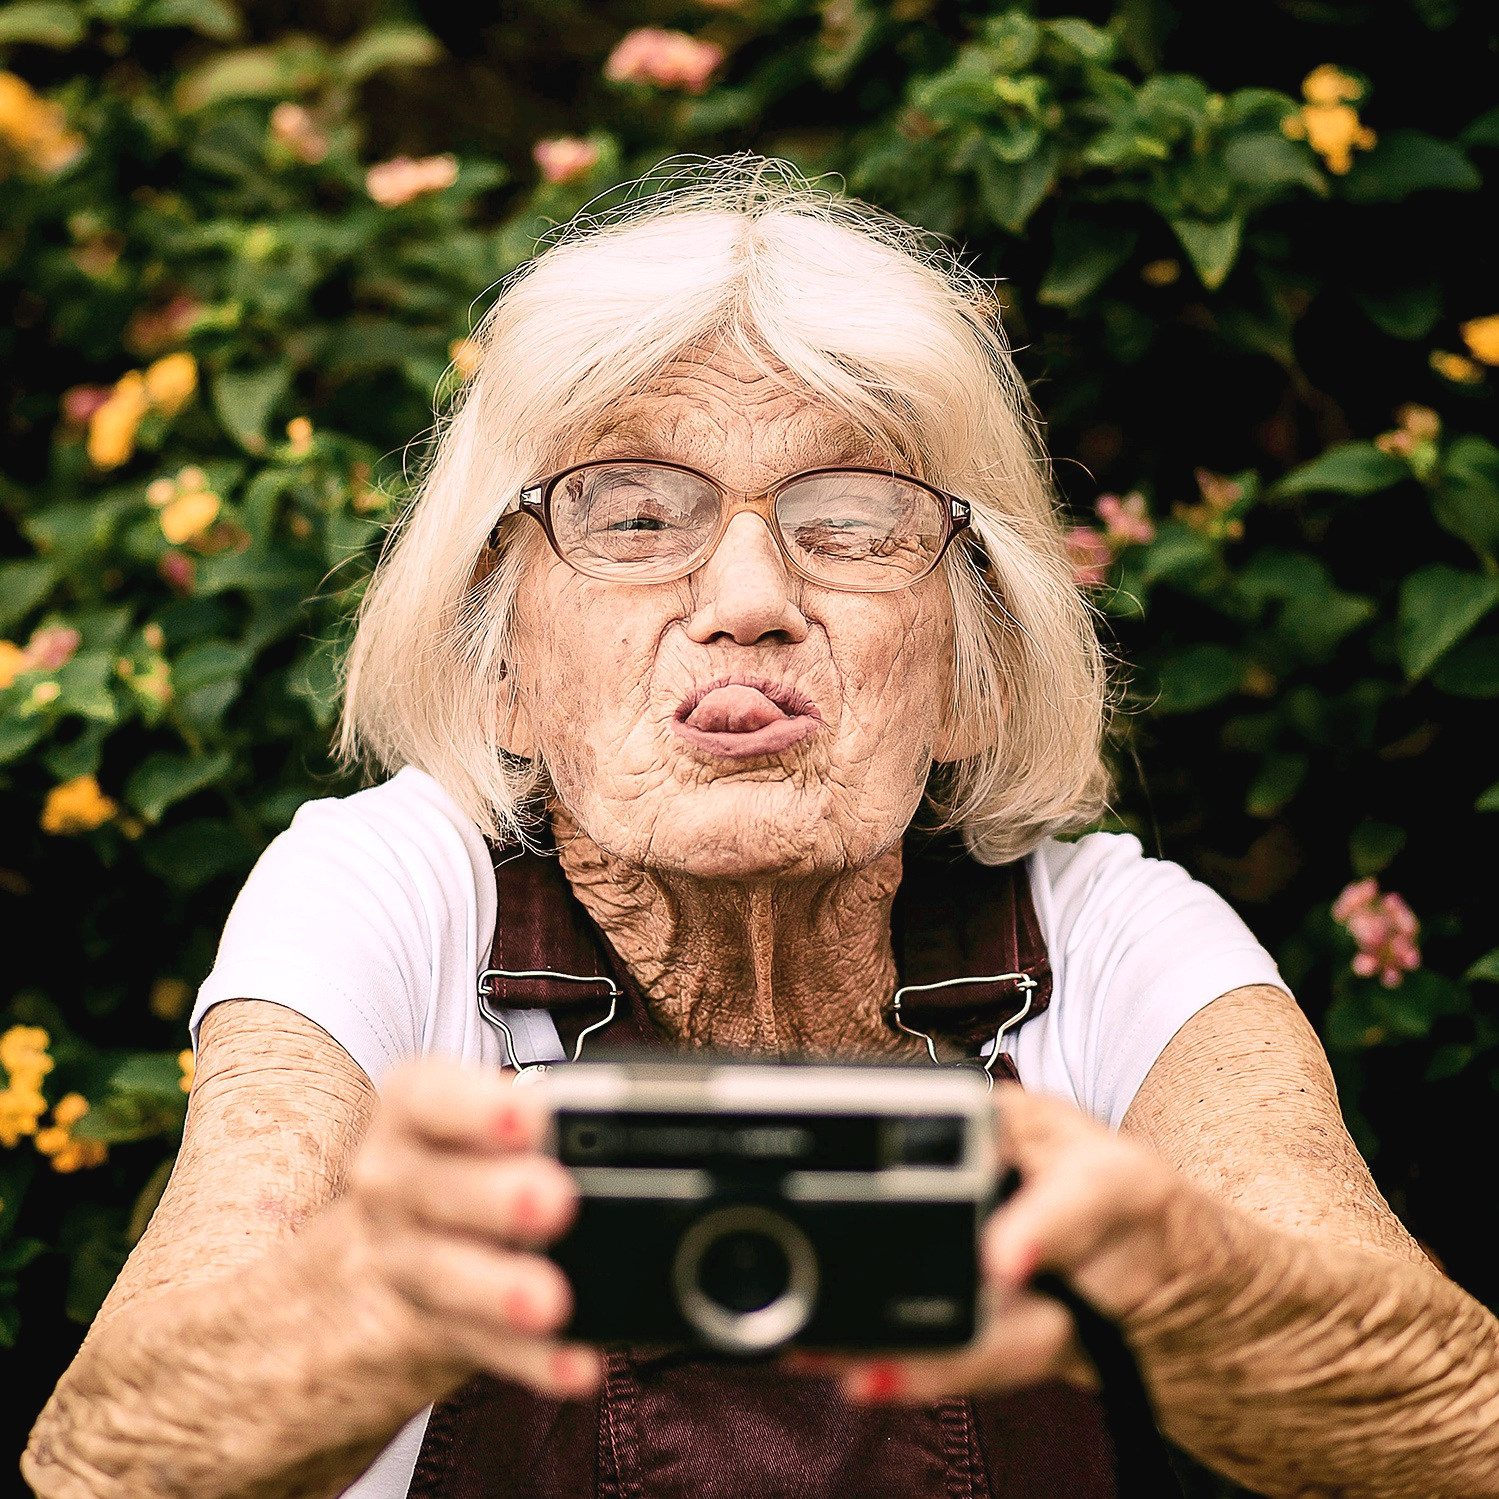 camera_glasses_lady_elder_inlinephtography_Photo+by+Edu+Carvalho+from+Pexels.jpg